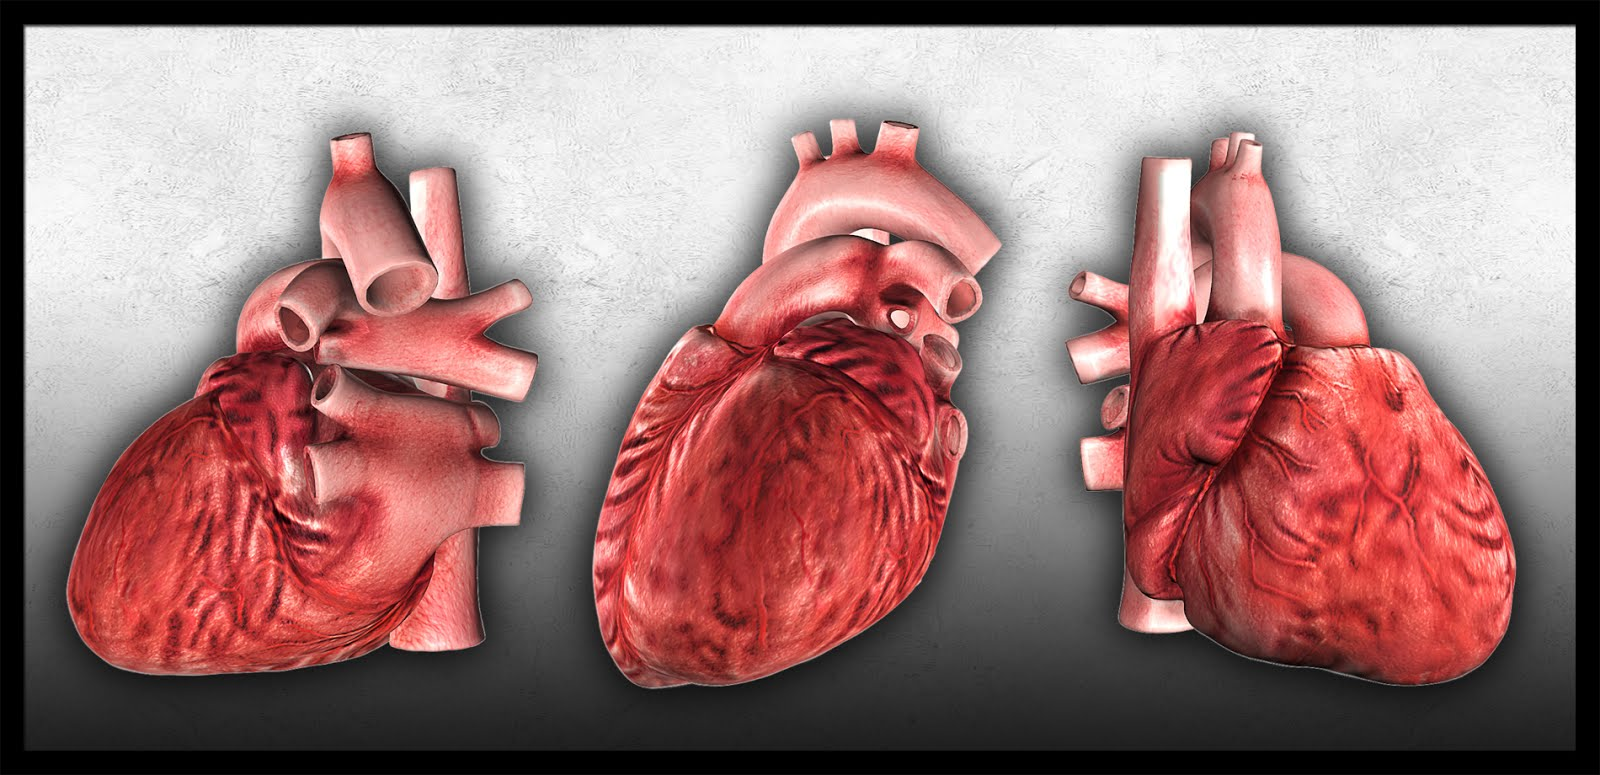 Real human heart images - photo#15